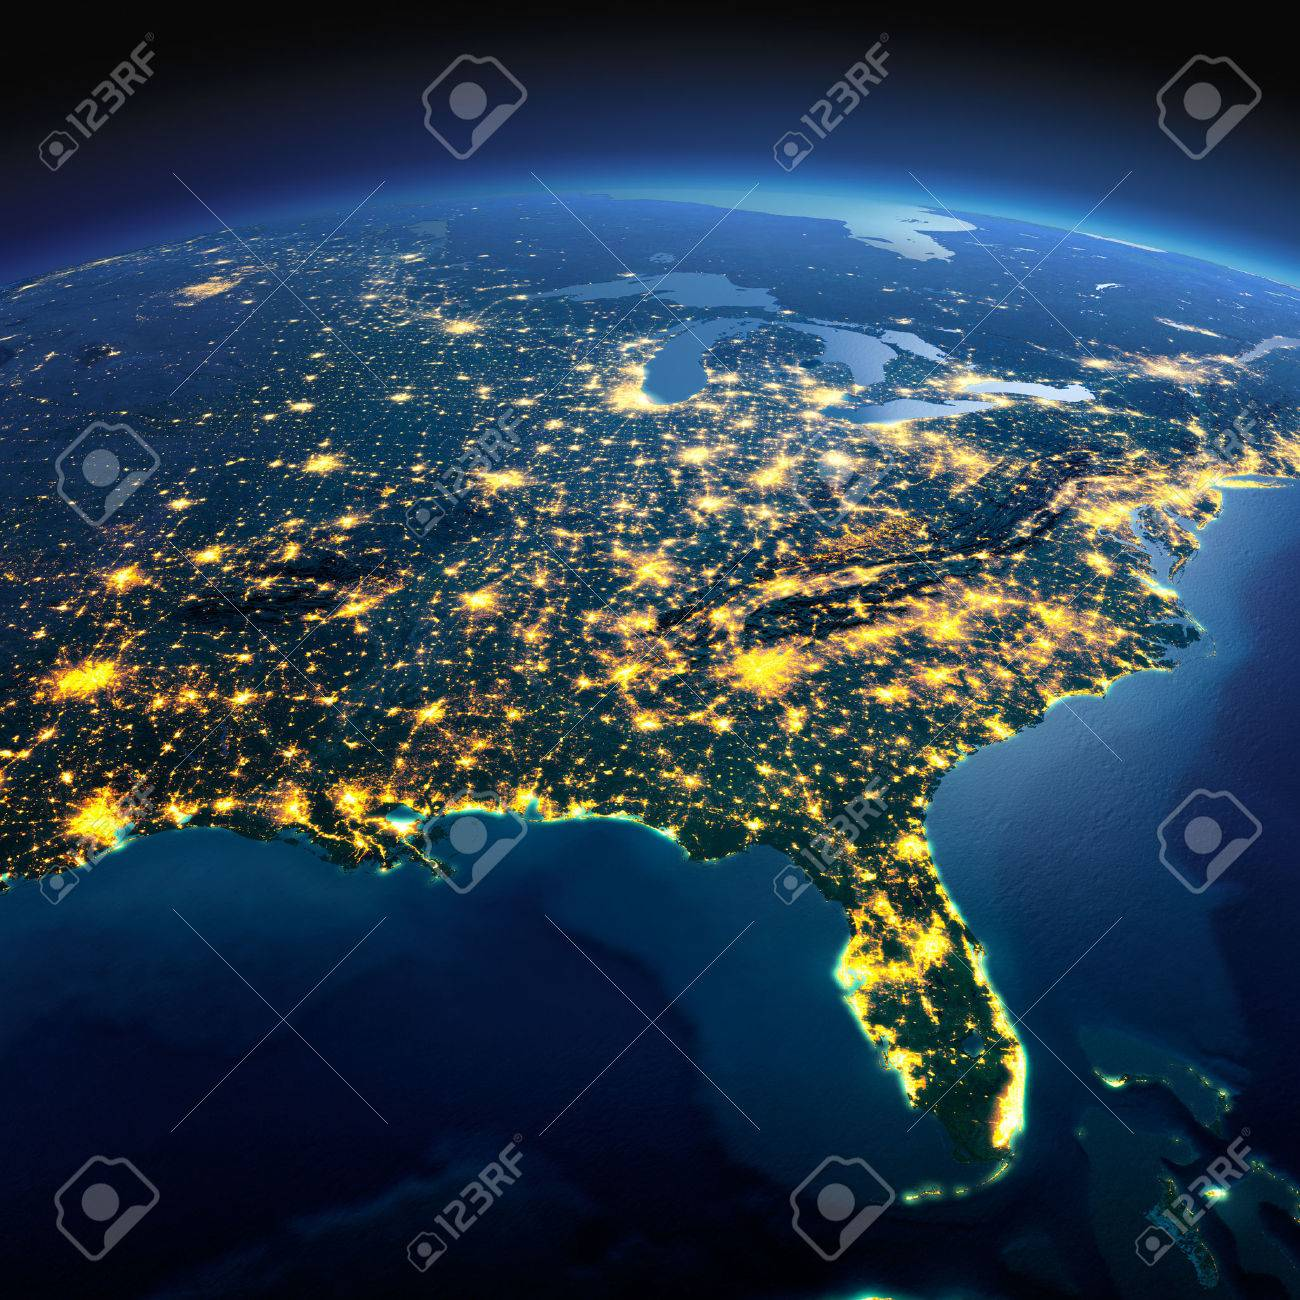 Night planet Earth with precise detailed relief and city lights illuminated by moonlight. North America. USA. Gulf of Mexico and Florida. Elements of this image furnished by NASA - 49133978